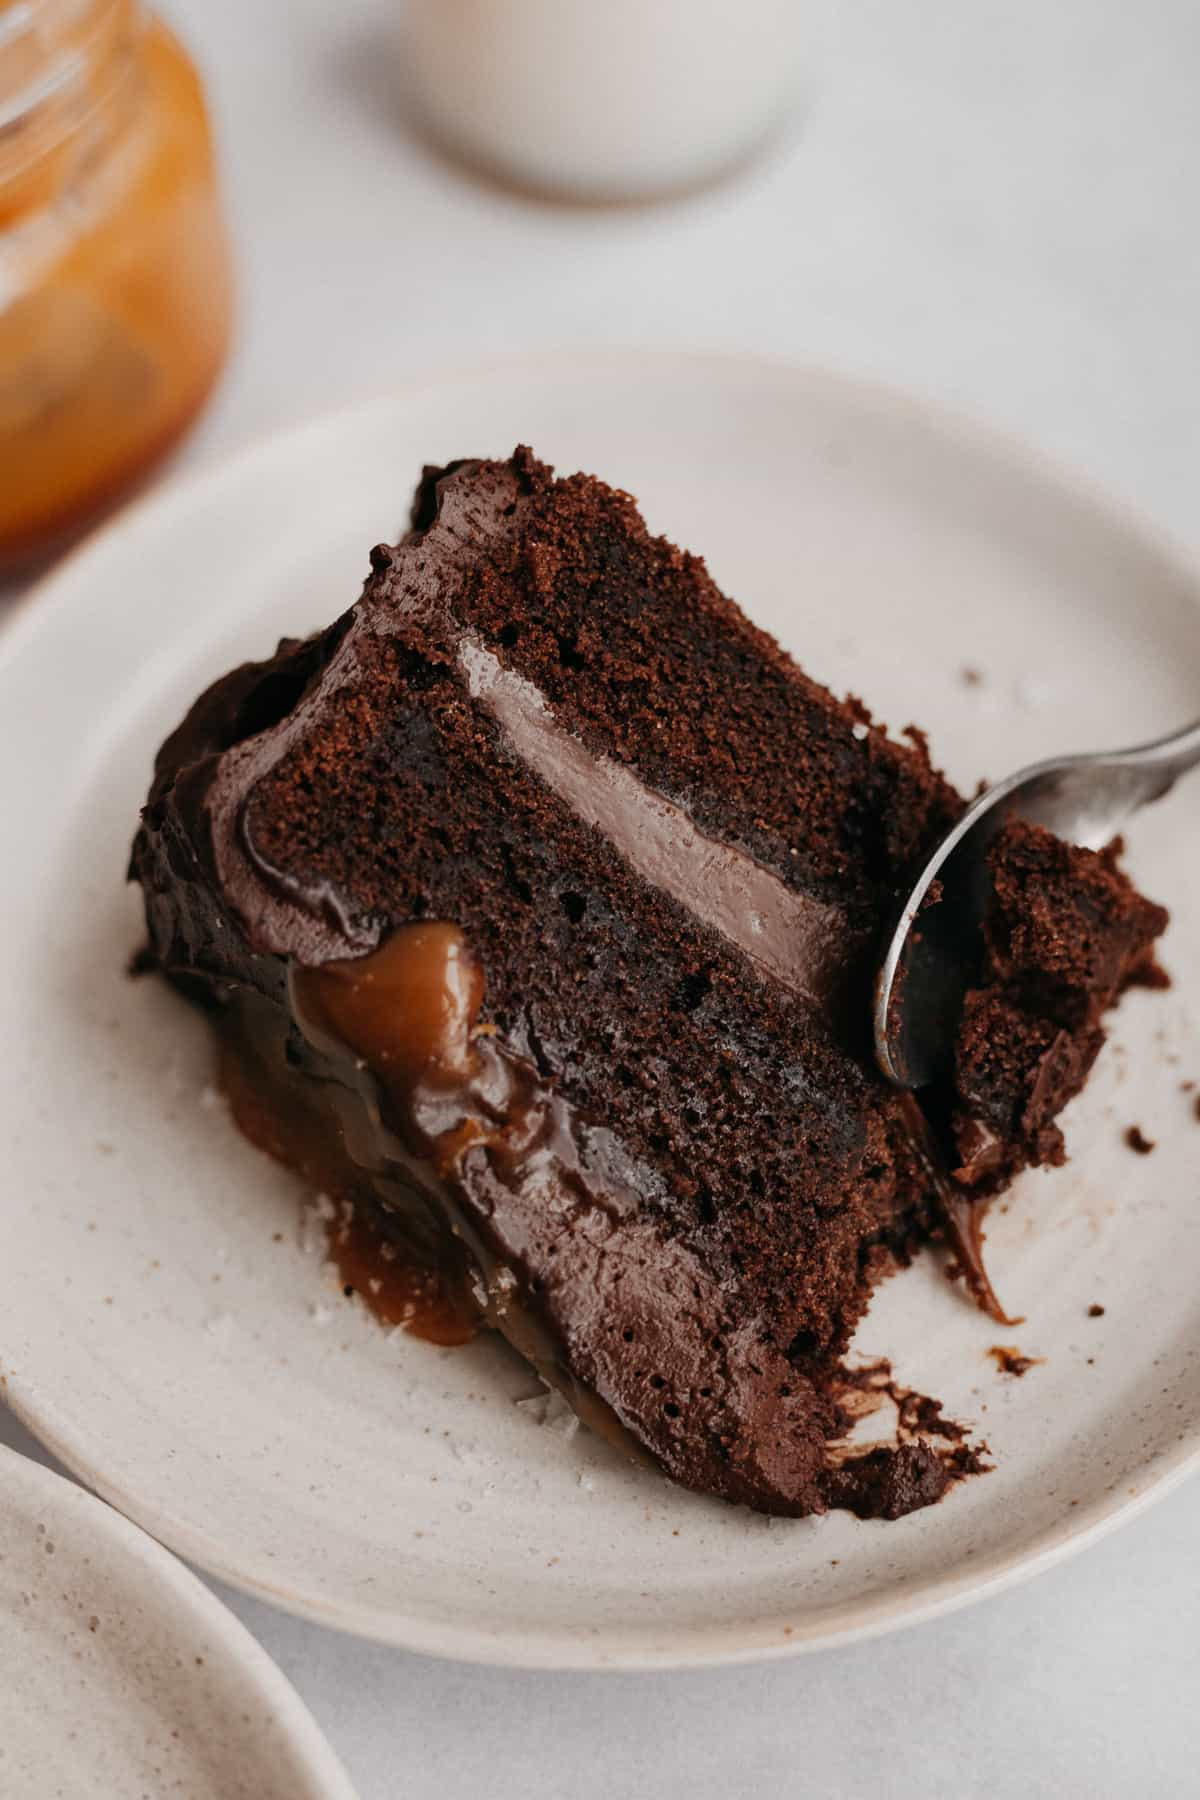 A salted caramel chocolate cake slice on a small beige plate